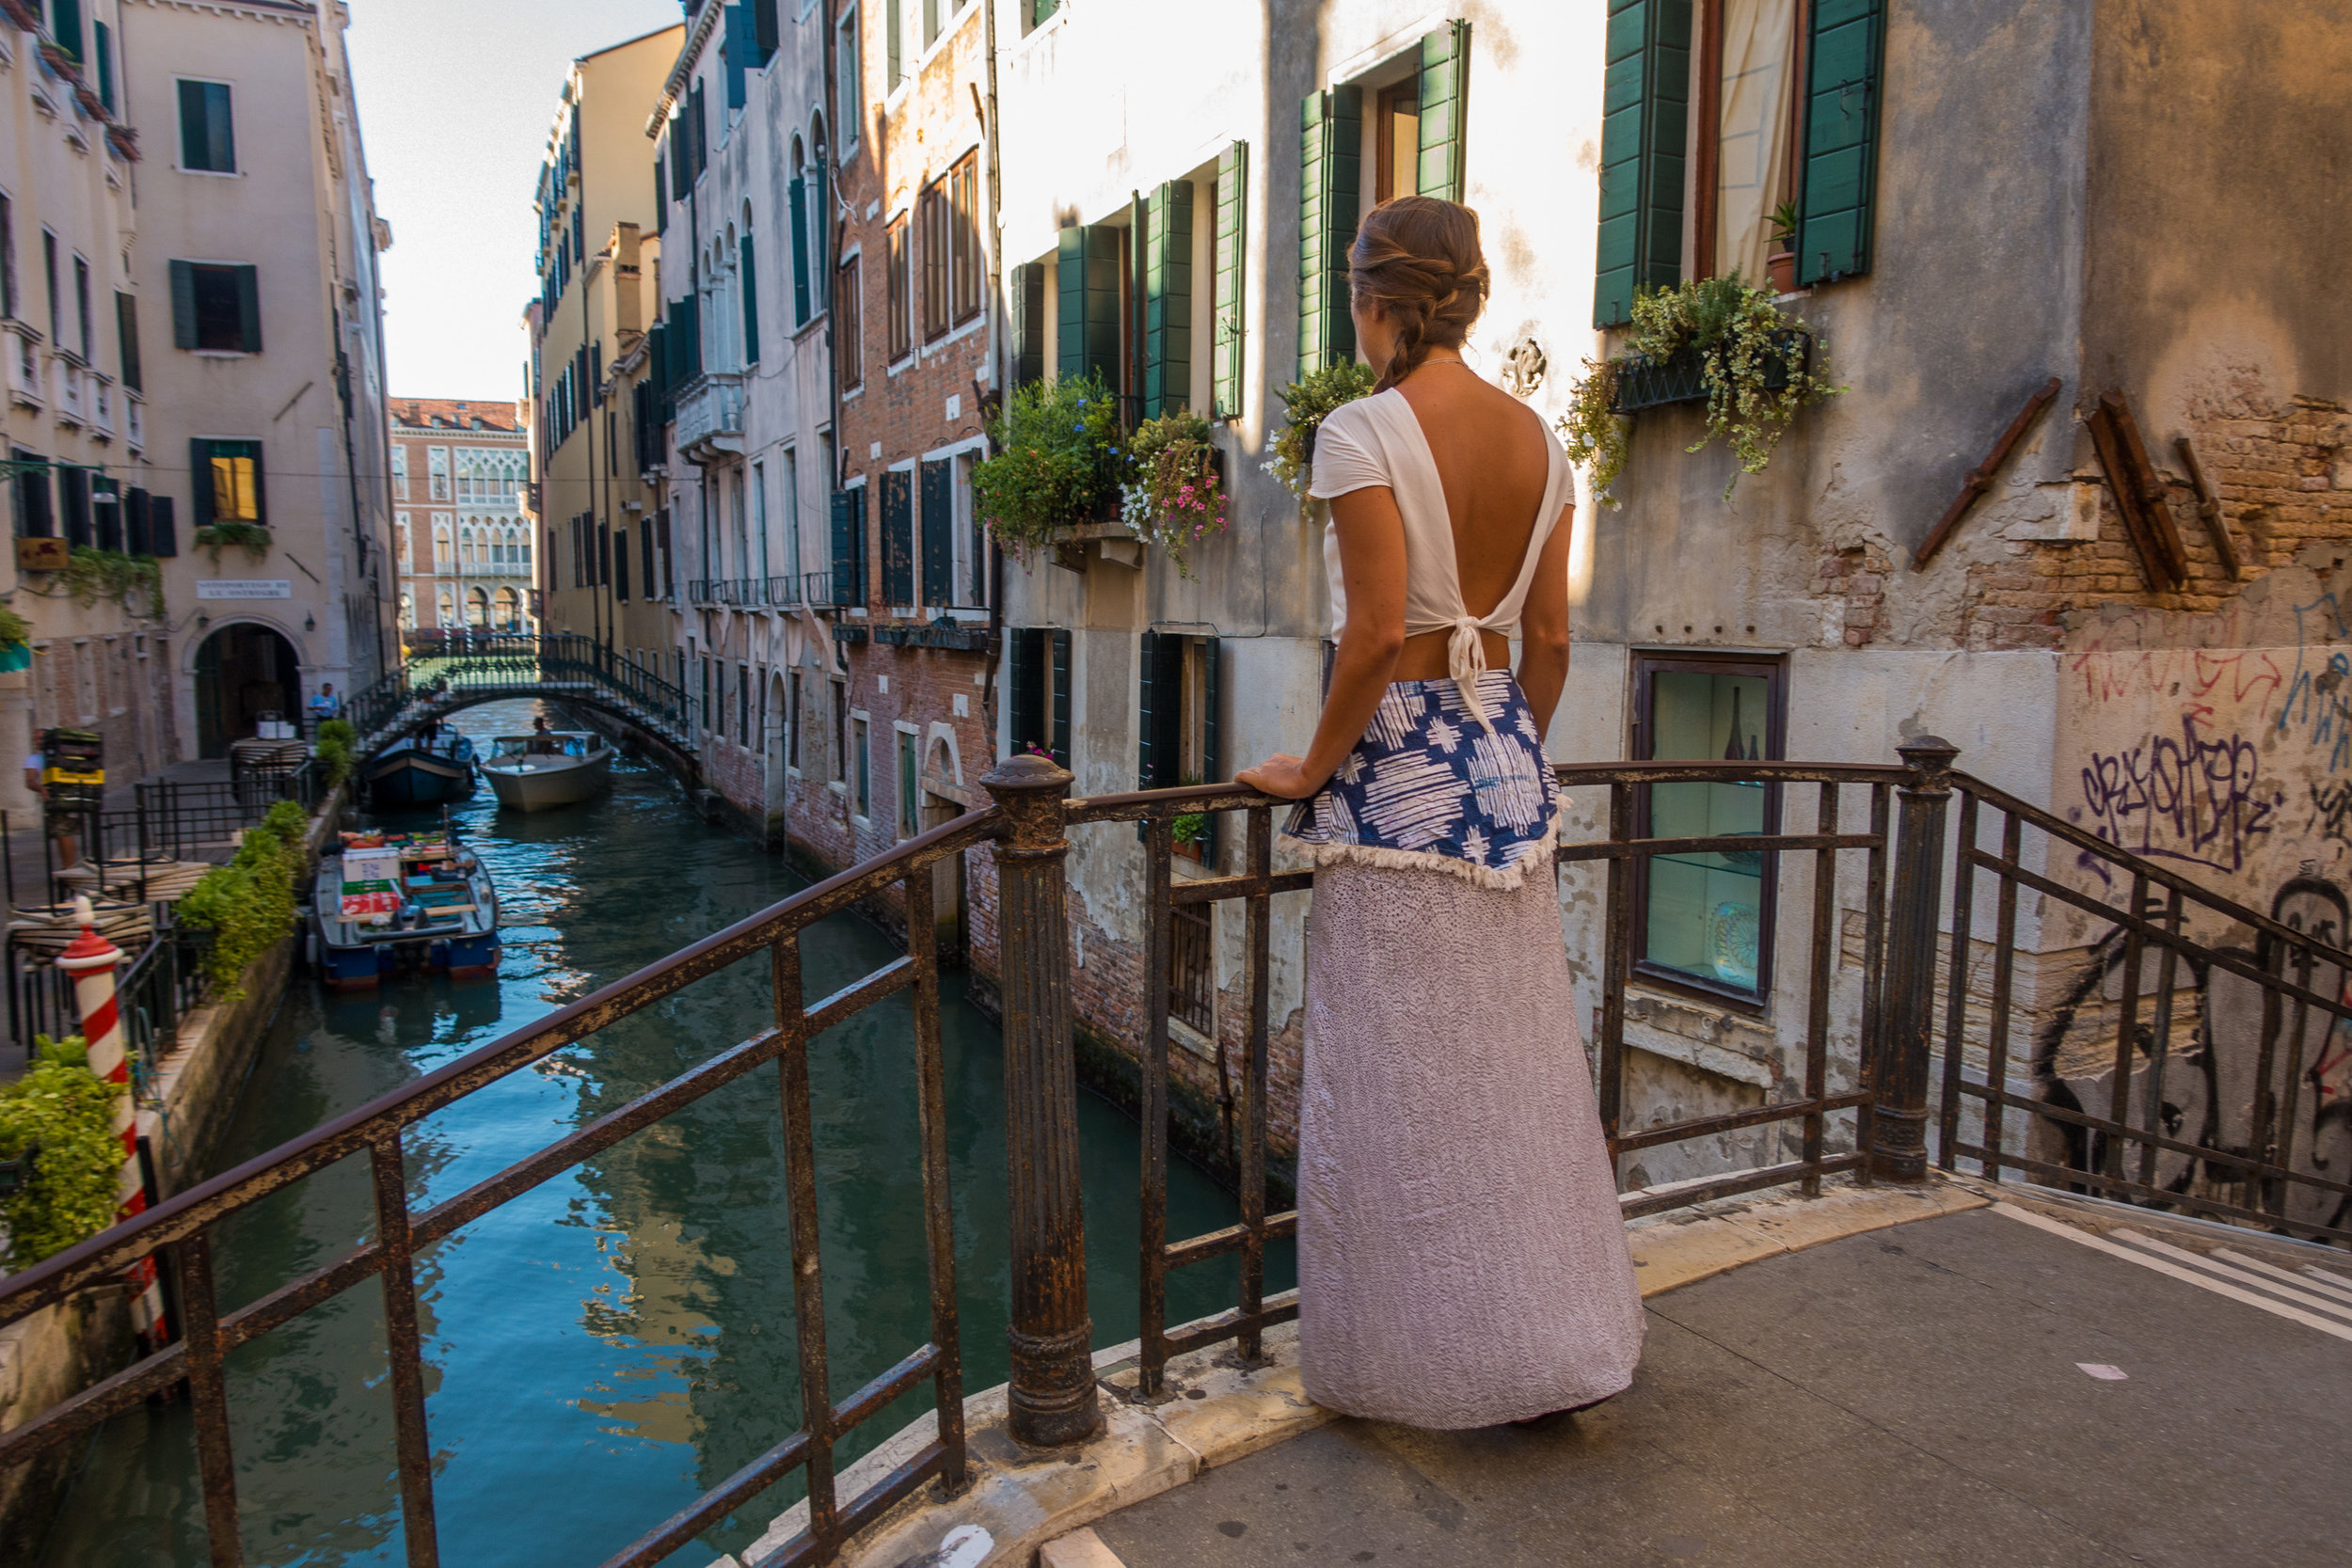 4.)Punta Sabbioni, Italy - The gateway to Venice. You can pay for secure camping and facilities near the ferry terminal and utilise a multiday ferry pass to access the islands.